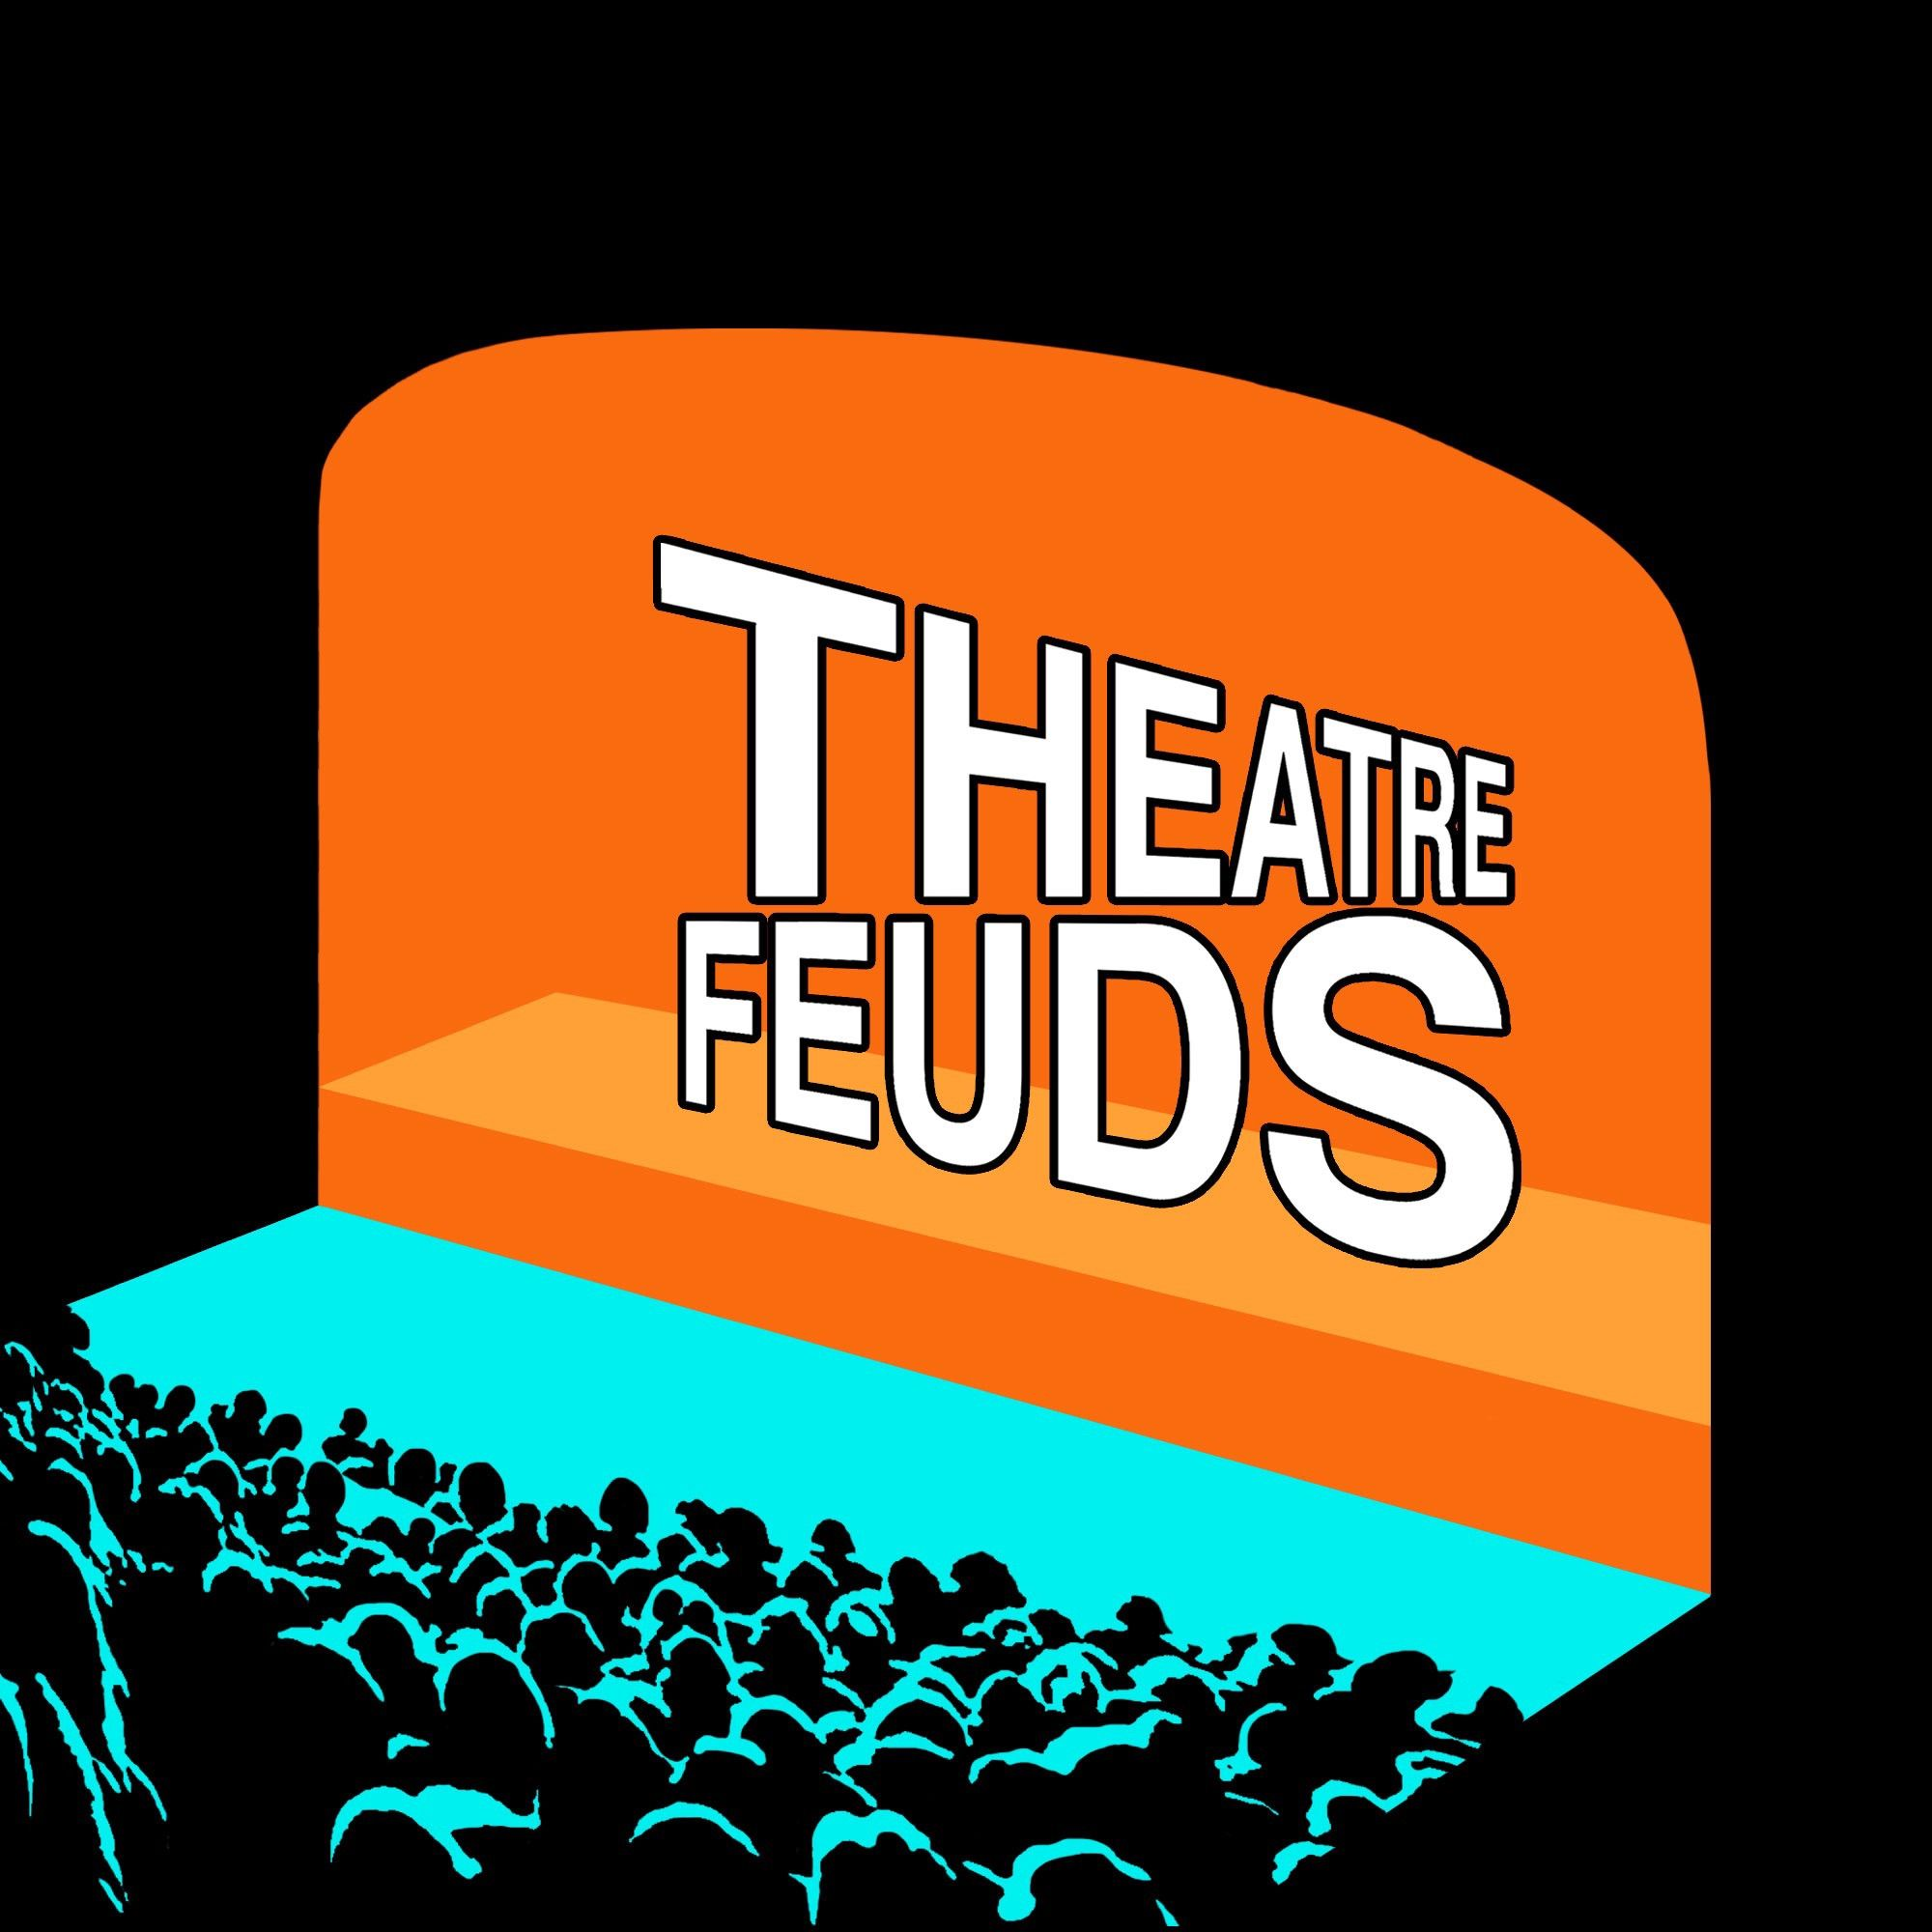 Theatre Feuds Episode 3 - Which stage production features the best soundtrack?